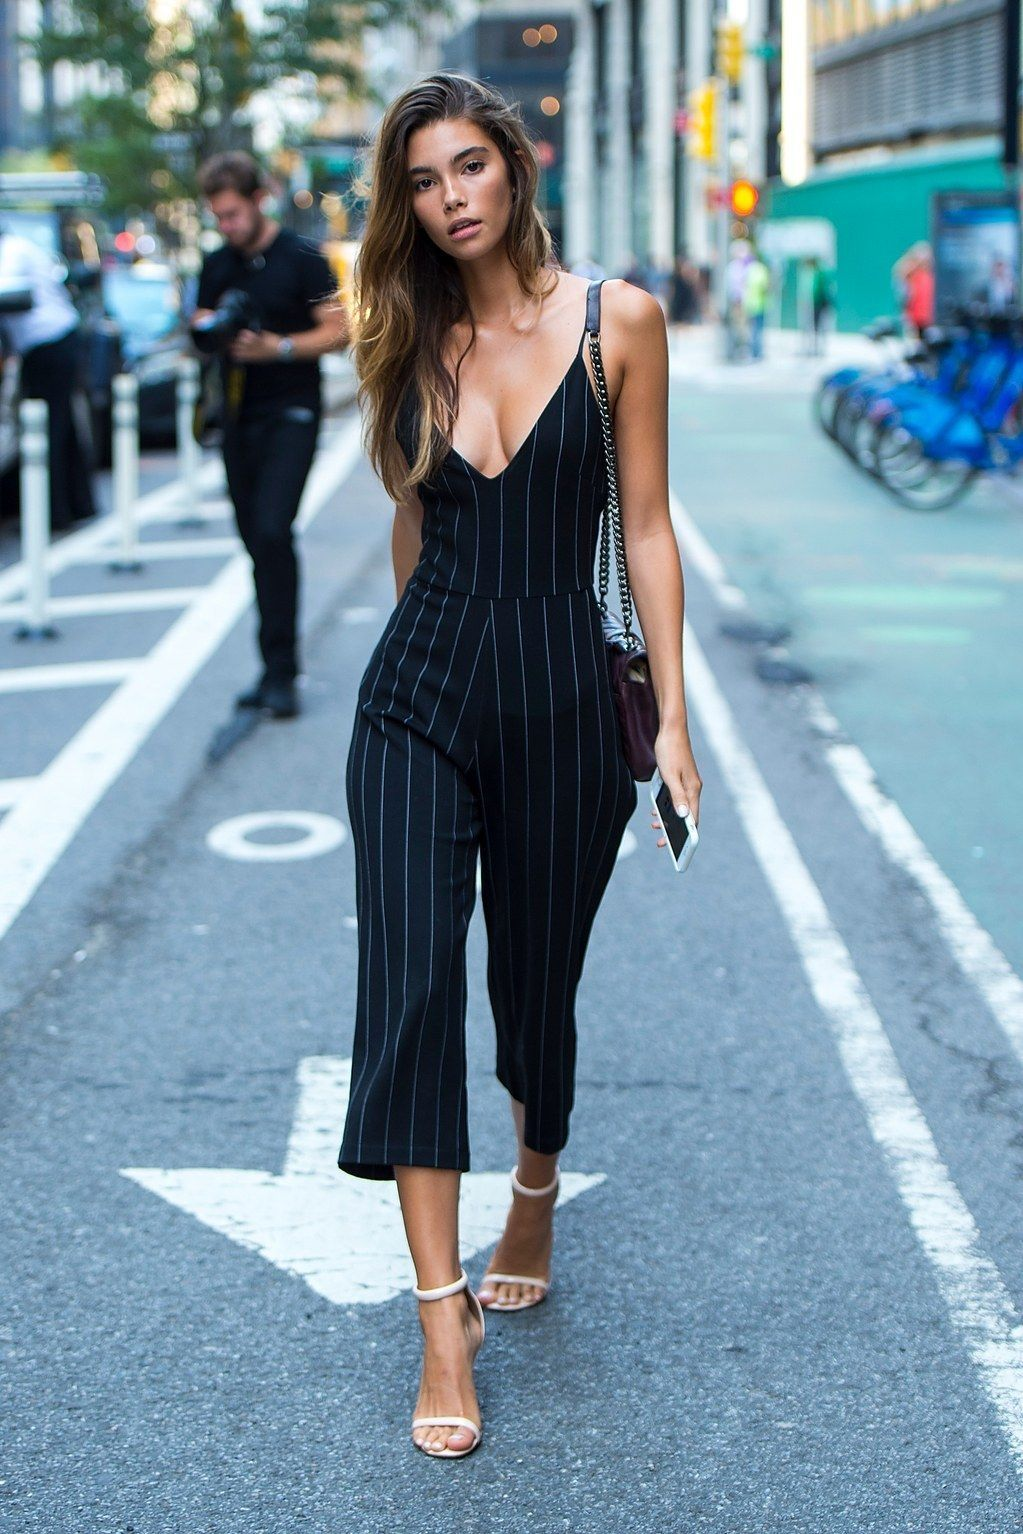 Fashion week Fashion celebrity trends fall photo for woman